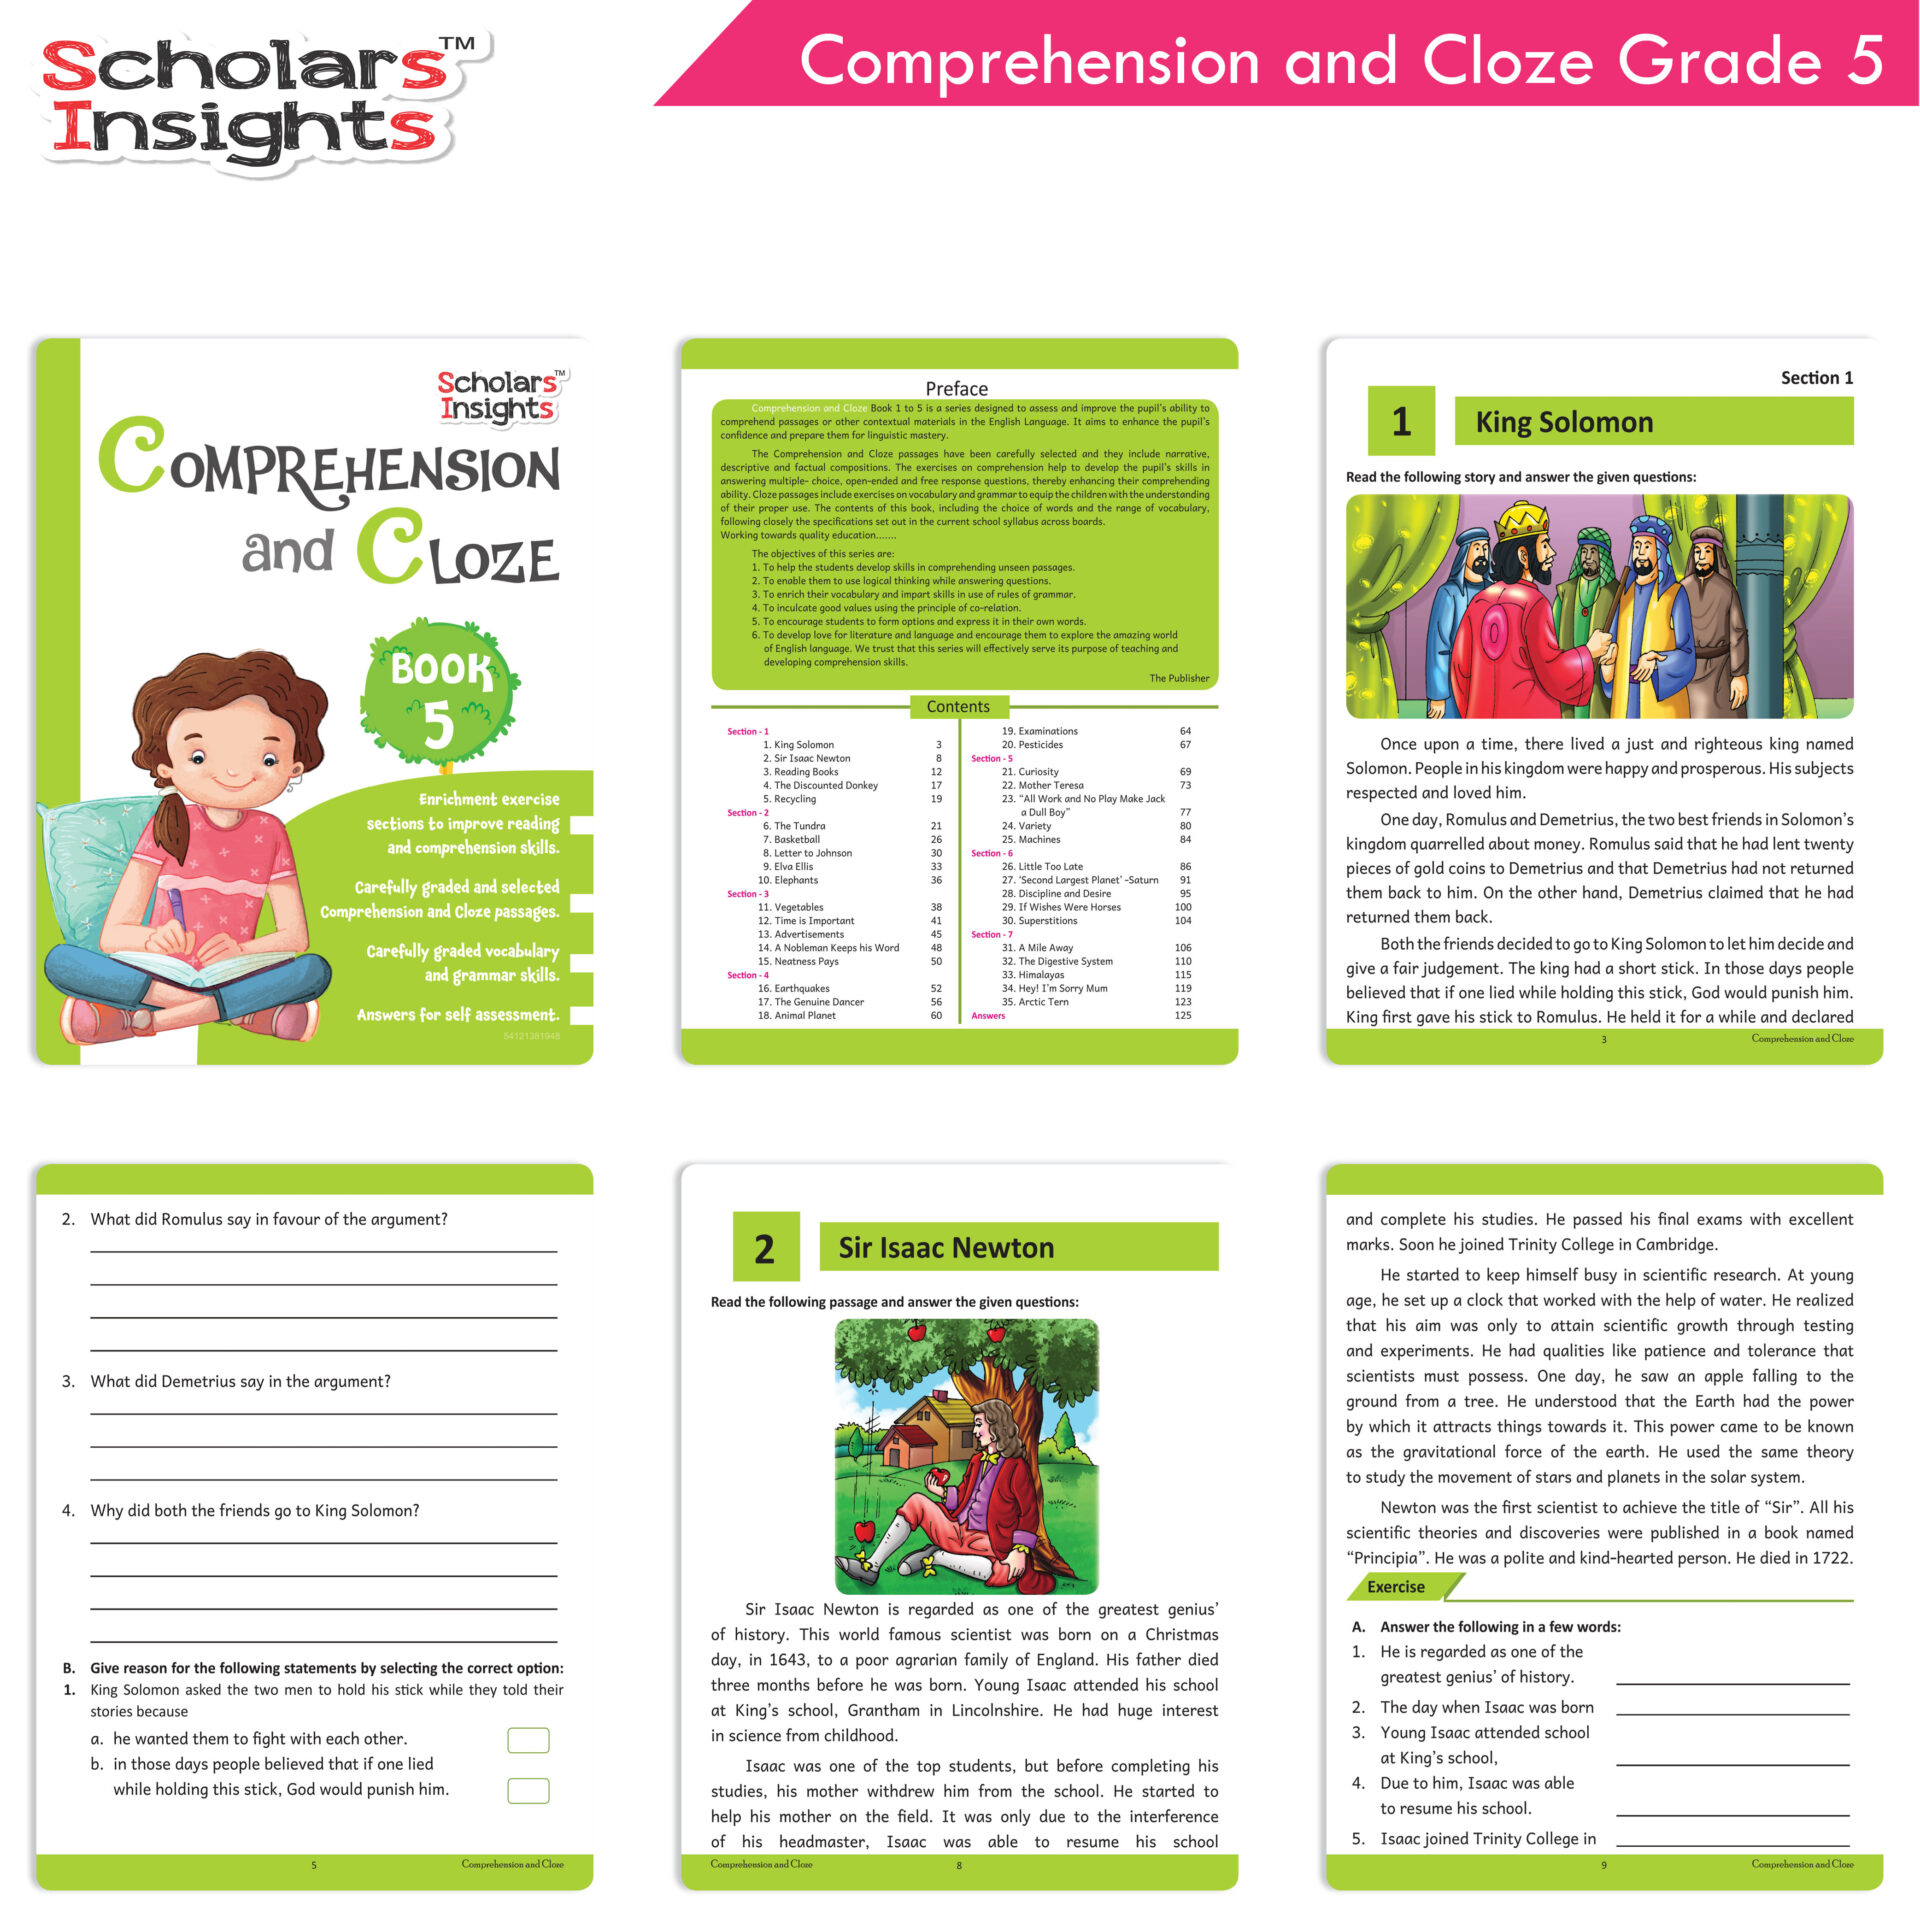 Scholars Insights Comprehension and Cloze Grade 5 3 1